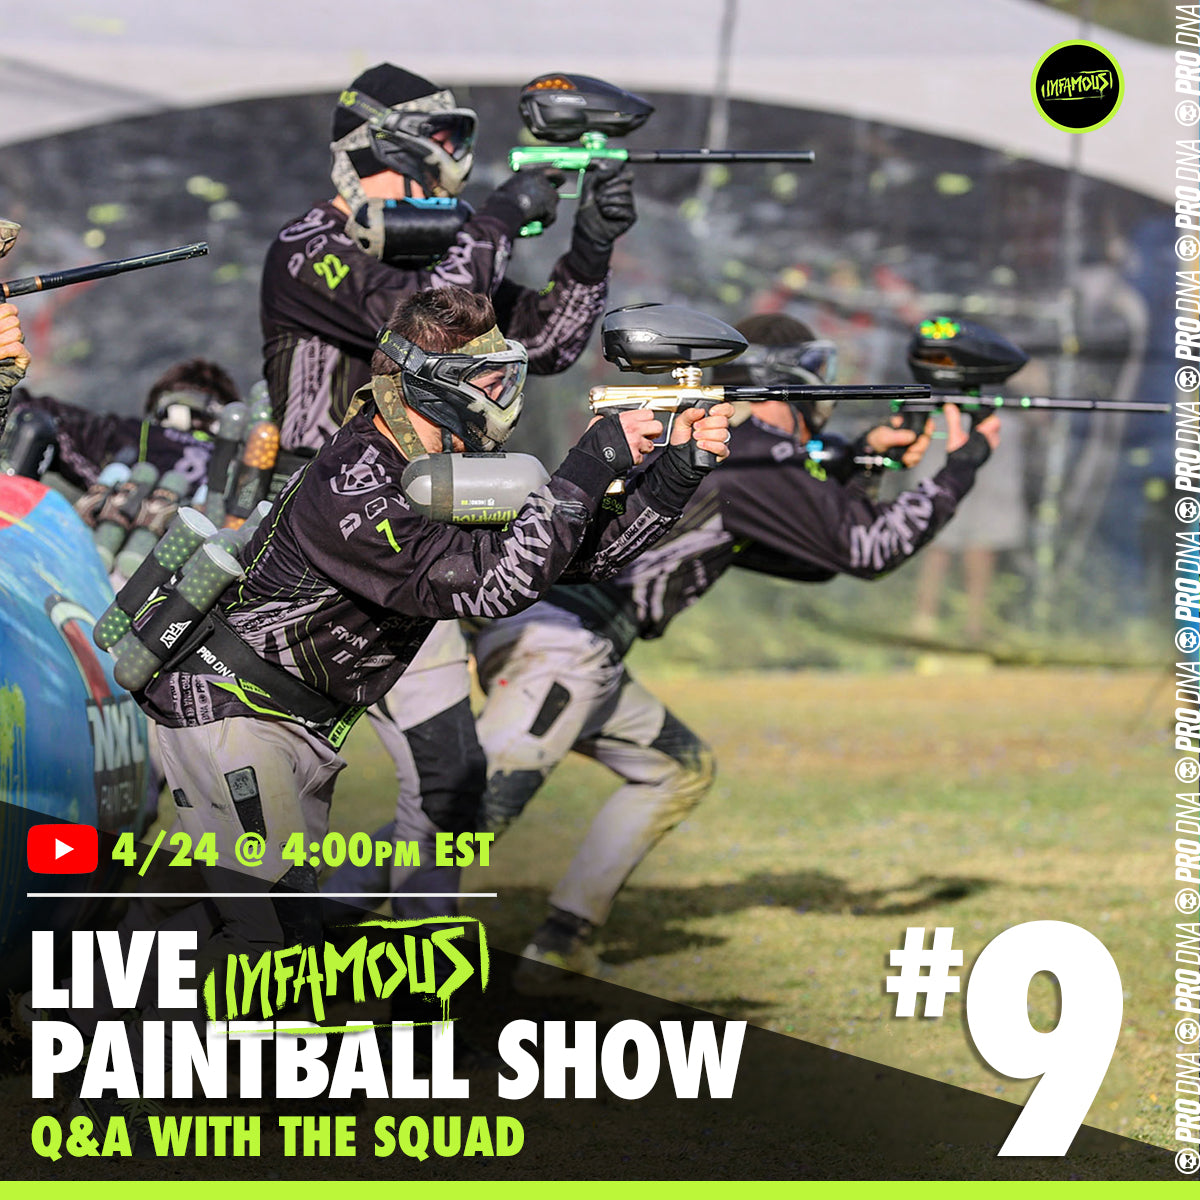 Infamous Live Paintball Show #9 - w/ The Team